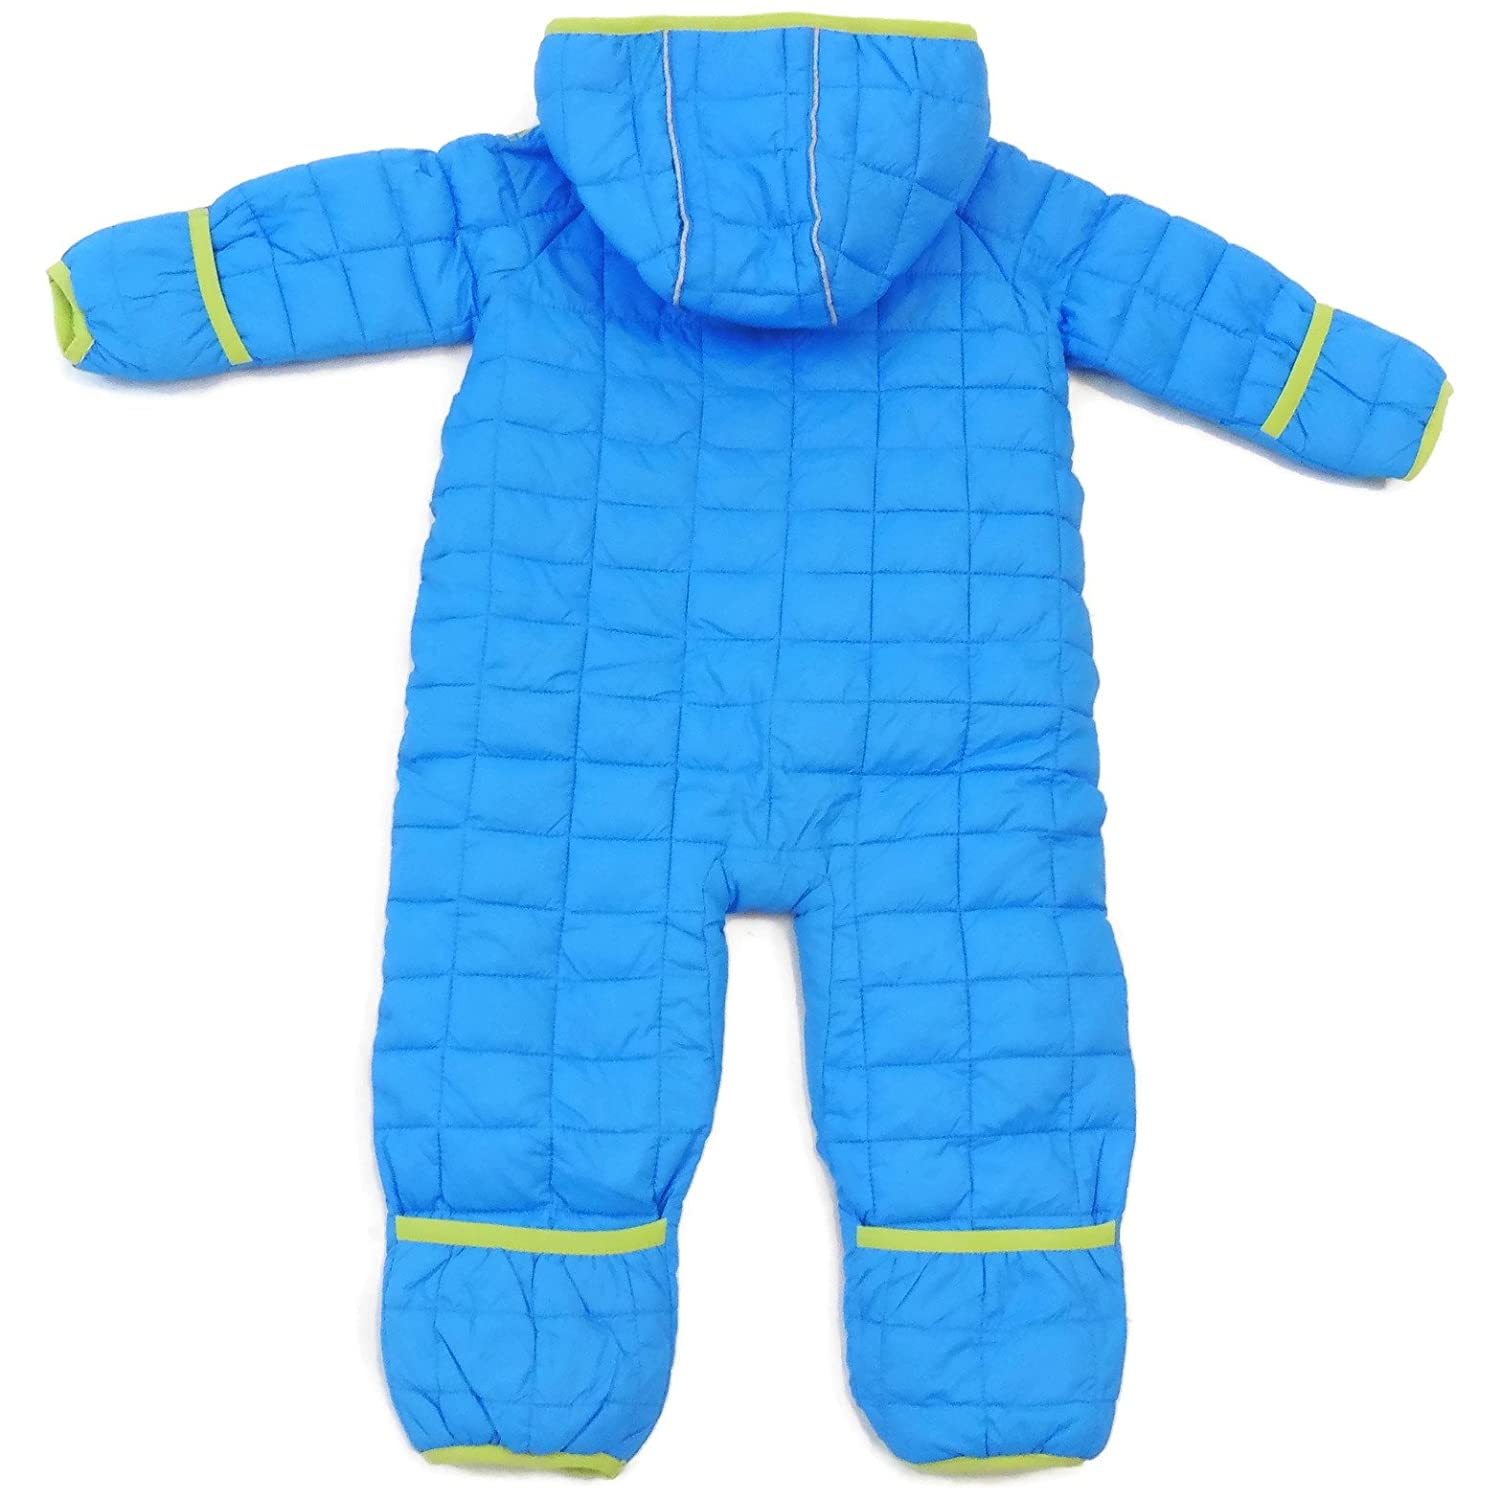 Snozu Infant and Toddler Fleece Lined Ultralight Quilting One Piece Snowsuit